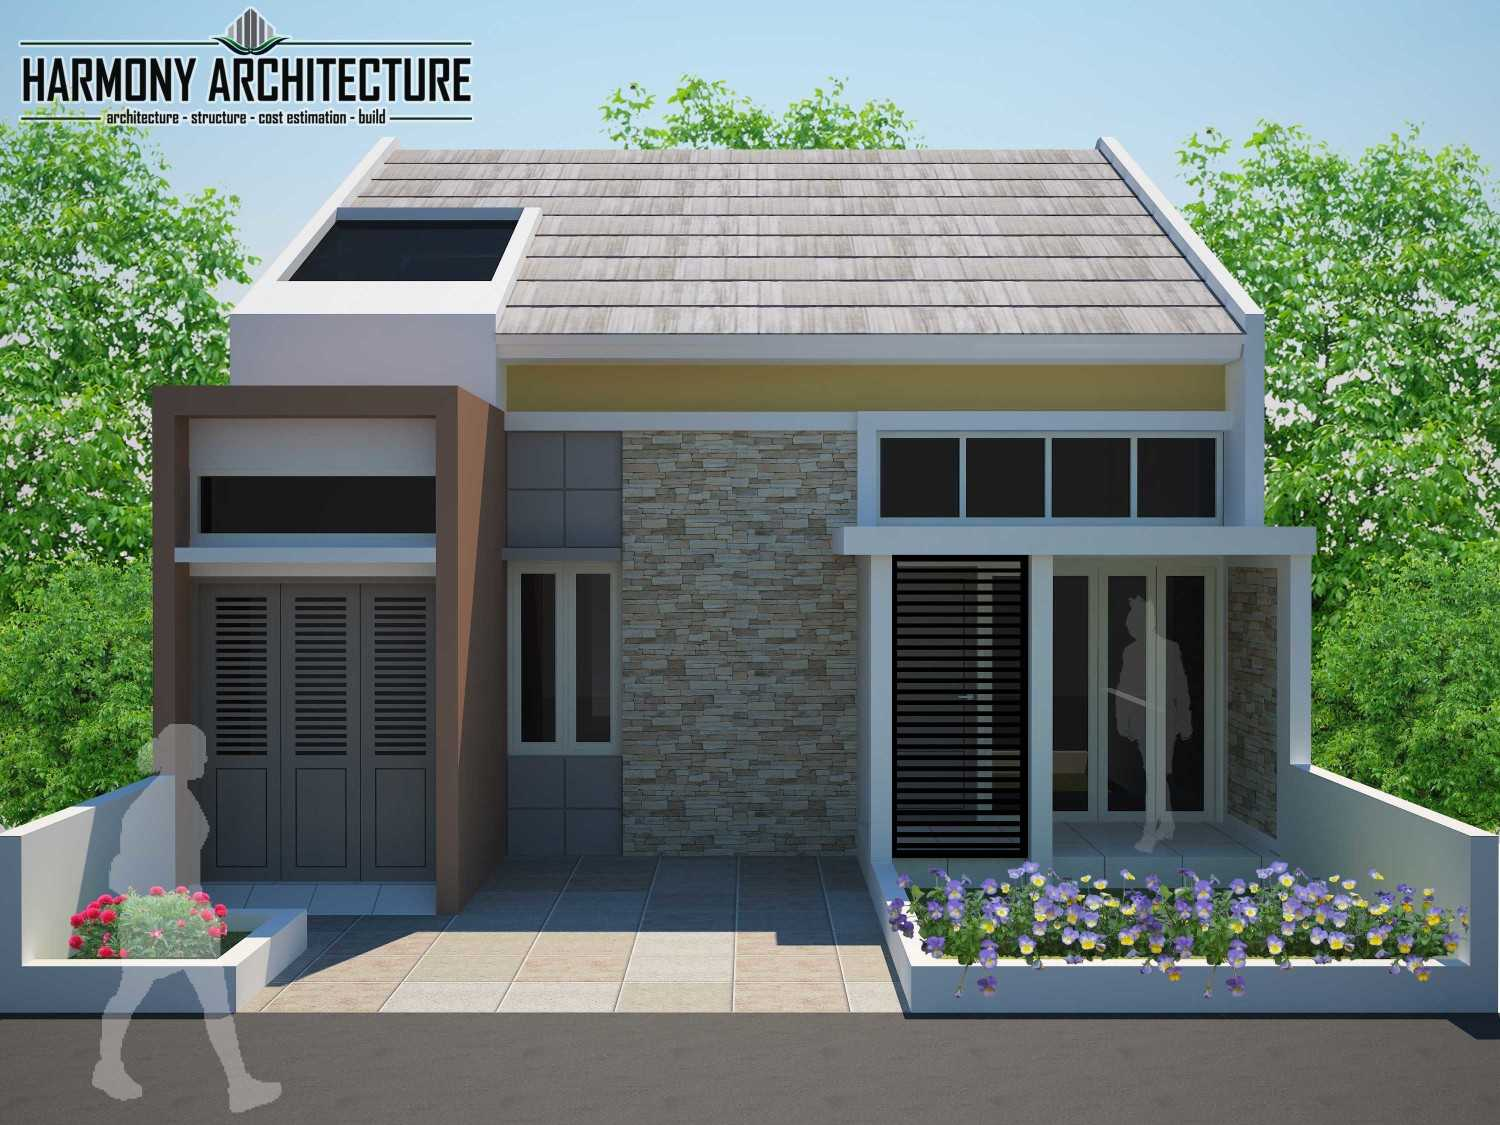 Jasa Design and Build HARMONY ARCHITECTURE di Kendal